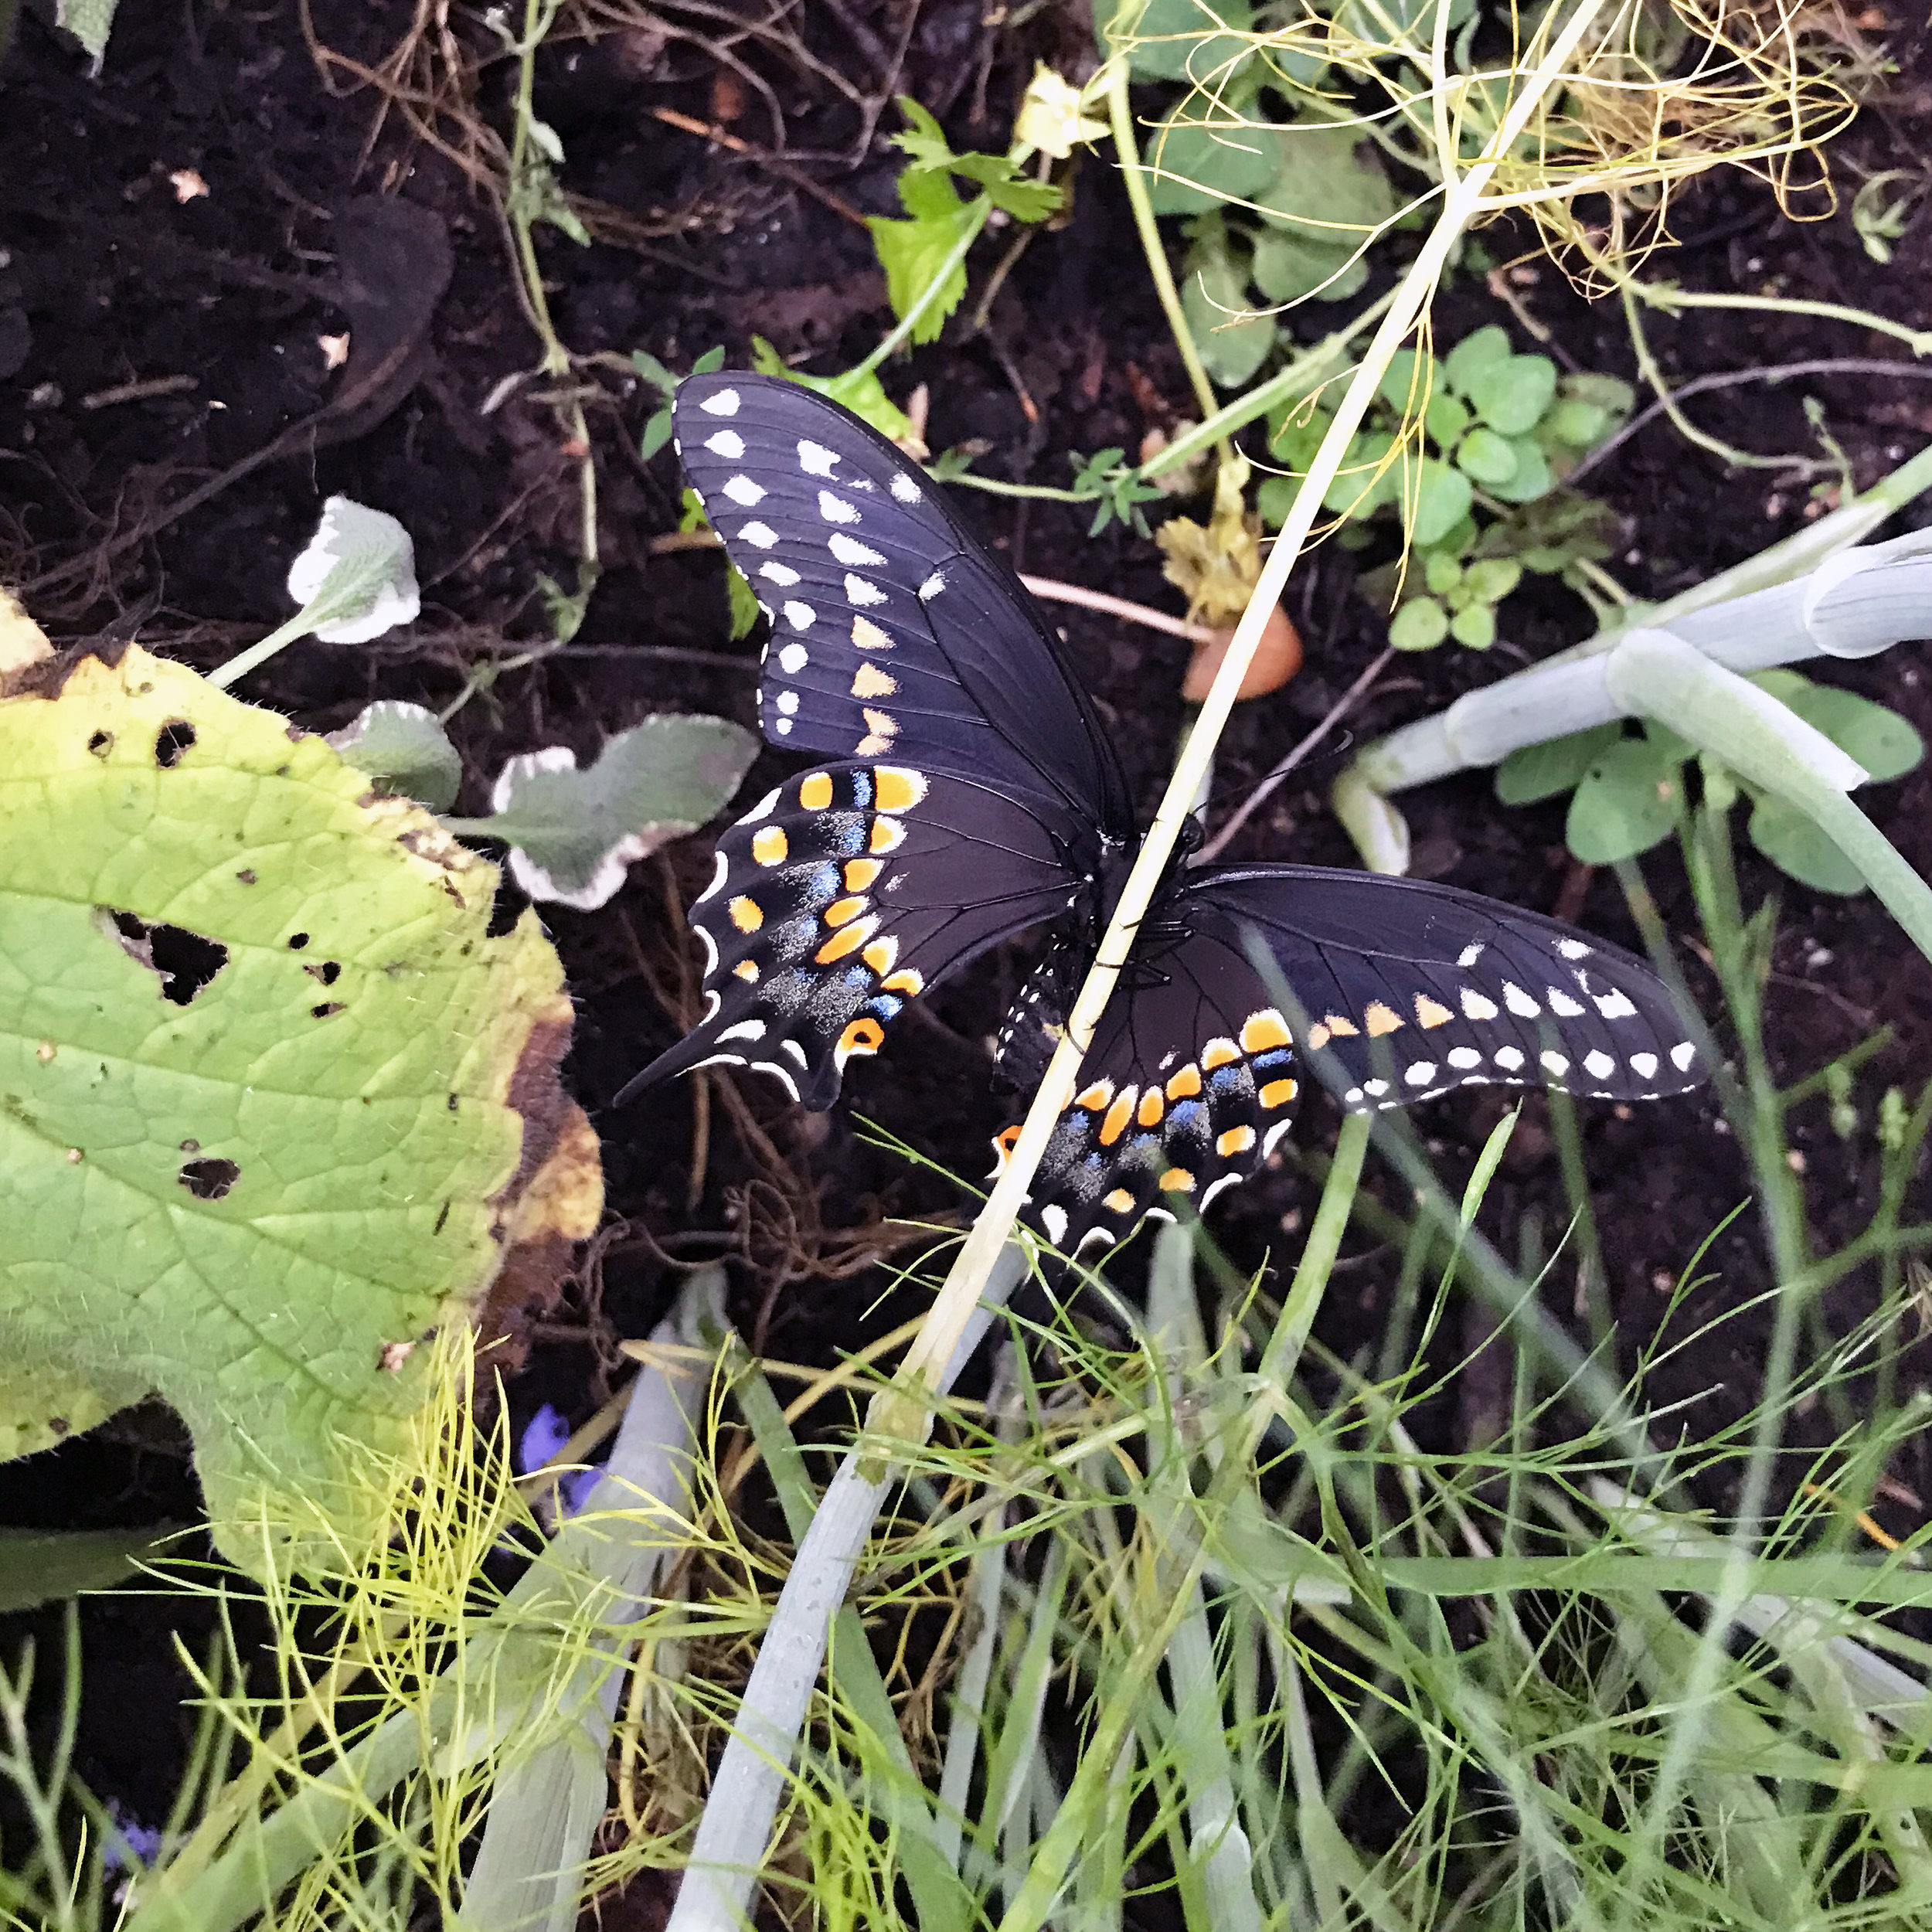 The Black Swallowtail Butterfly Emerged from Its Chrysalis